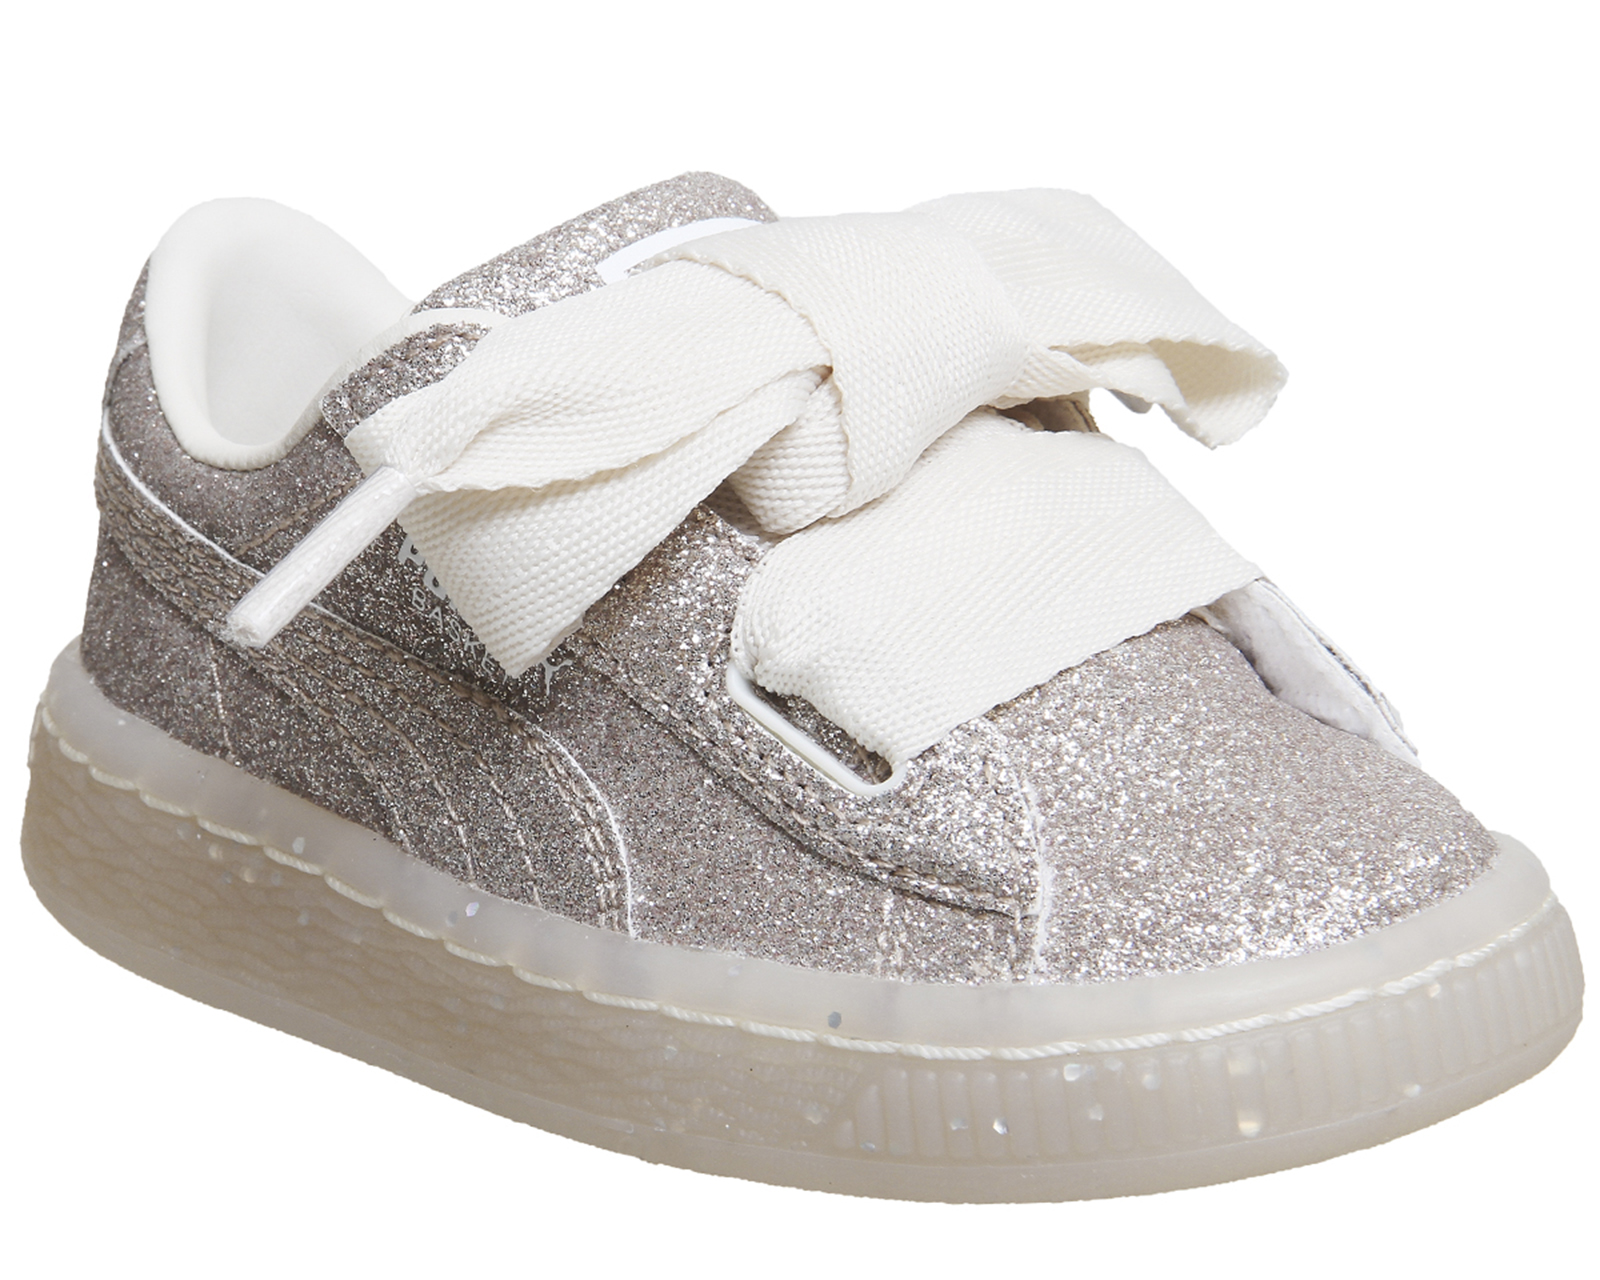 newest 33831 b60fe Details about Kids Puma Basket Heart Inf Eggnog Glitter Exclusive Kids